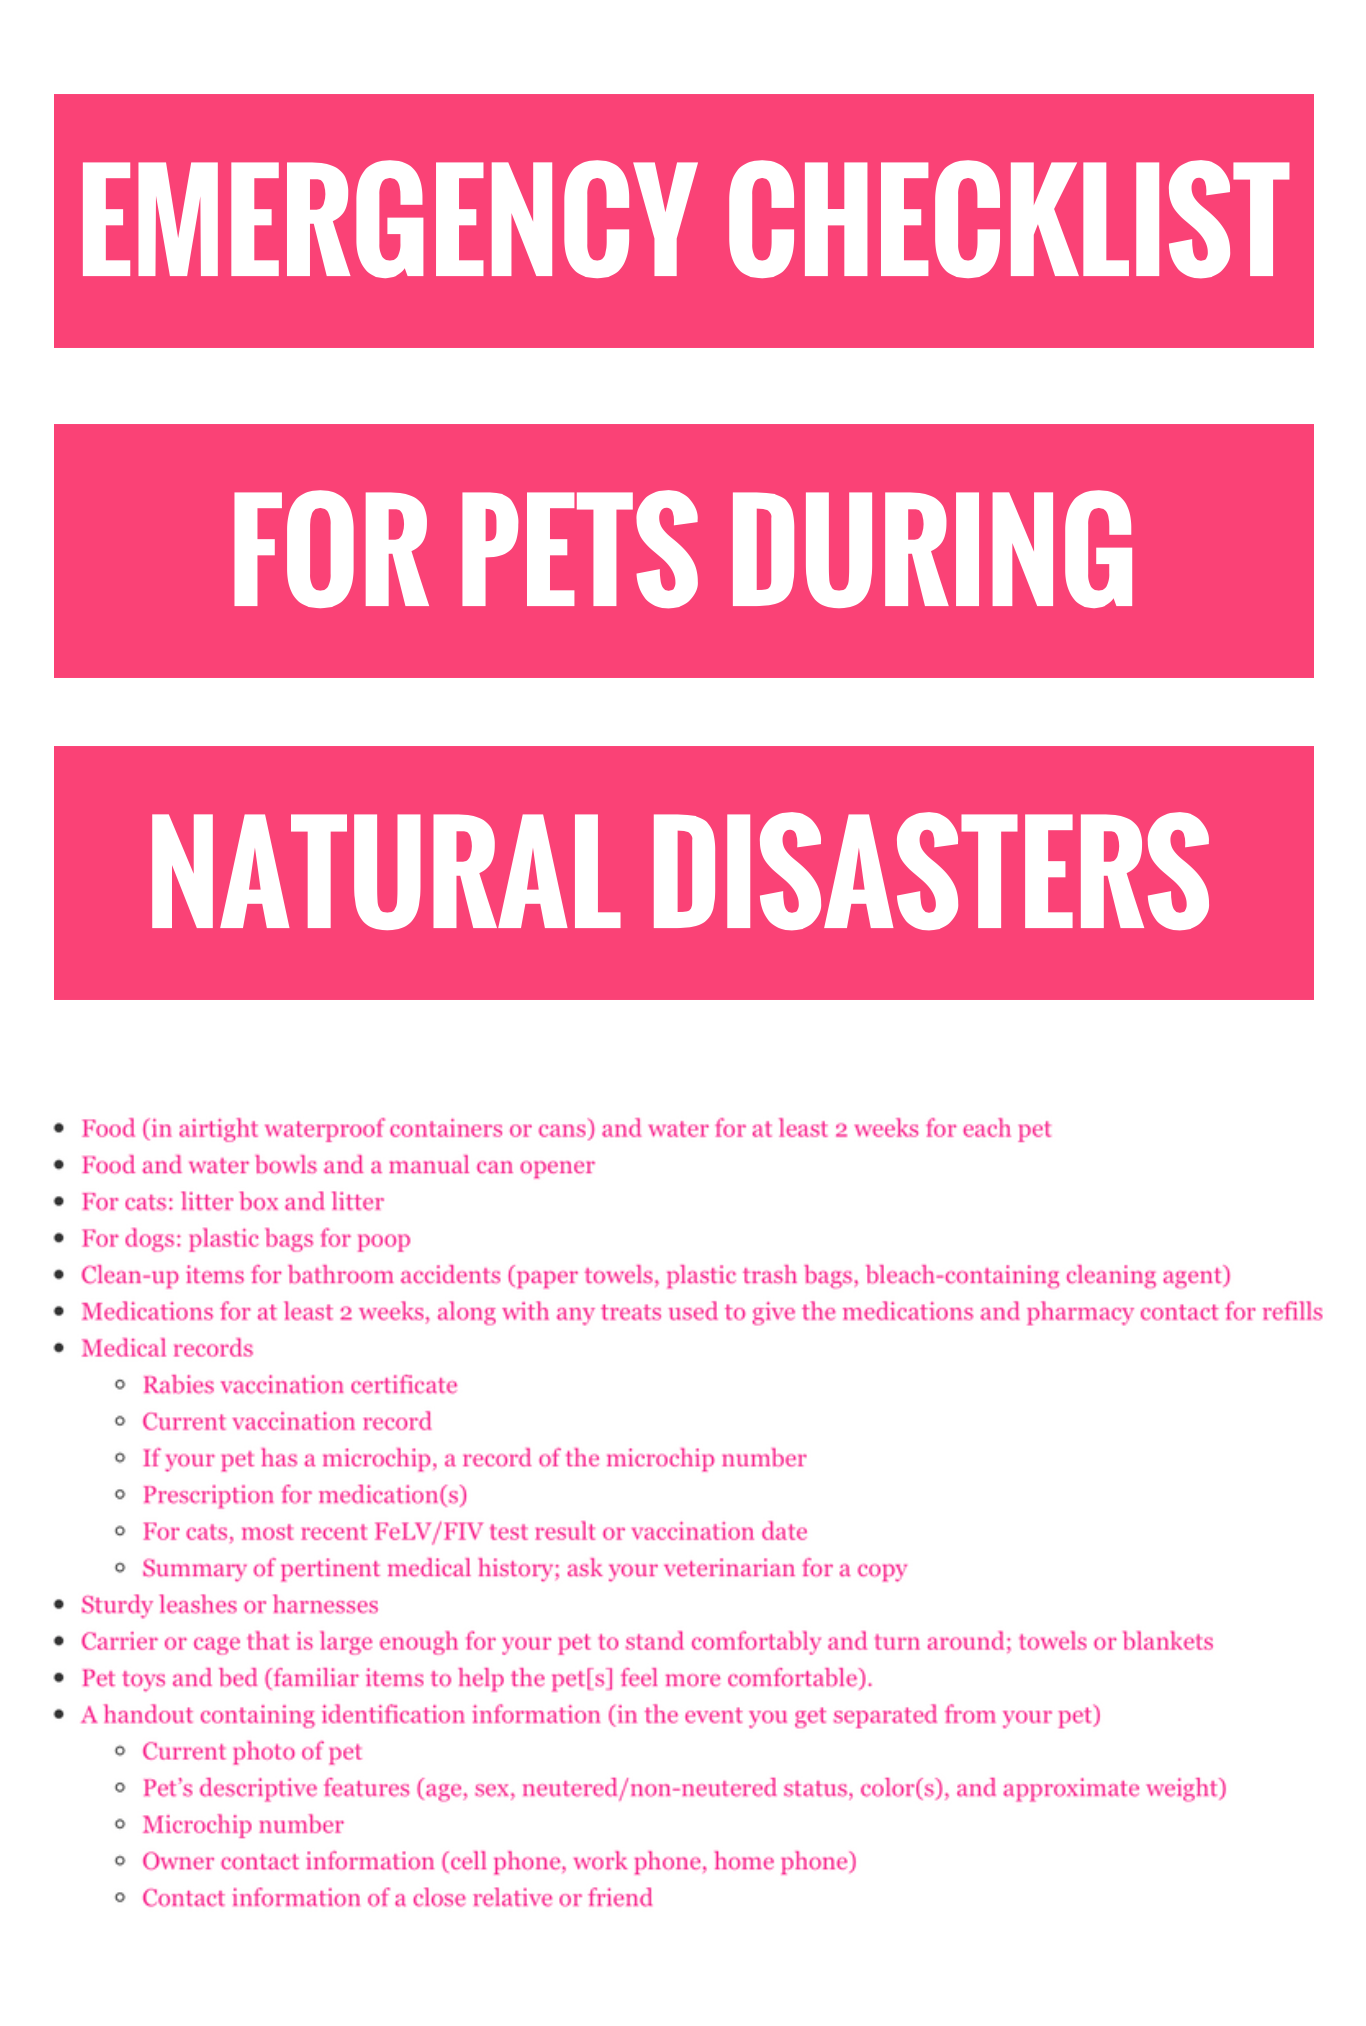 Keeping Your Pet Safe During Natural Disasters